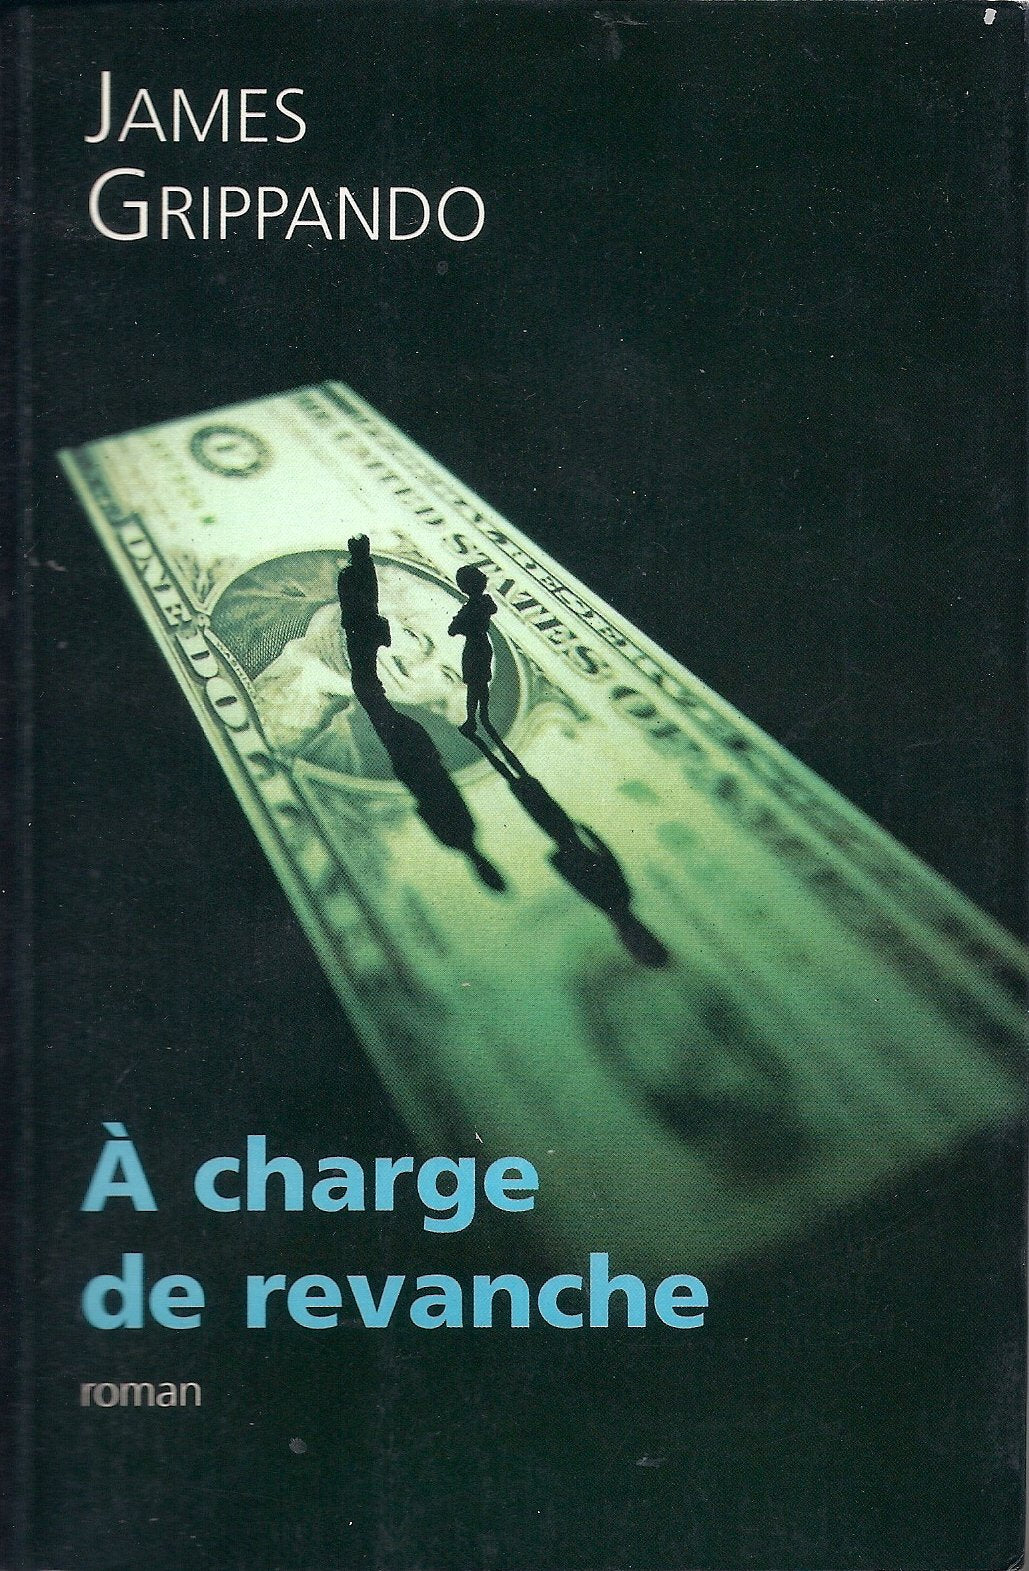 Livre ISBN 2744135585 À charge de revanche (James Grippando)